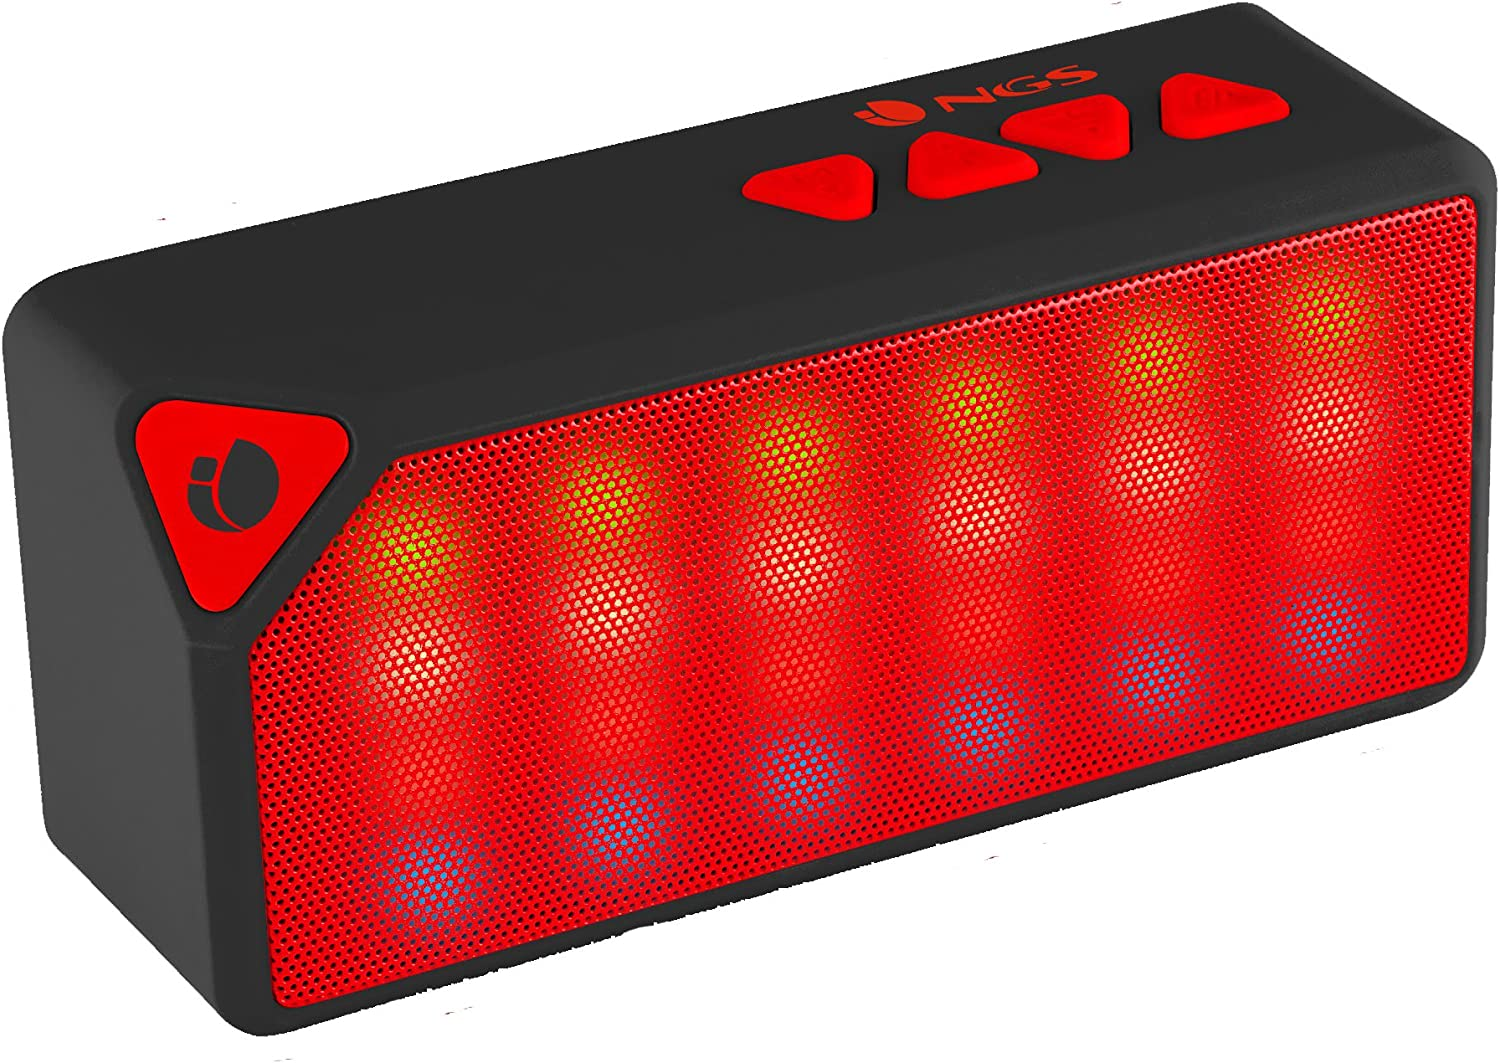 NGS Roller Flash - Altavoz con Bluetooth, color rojo